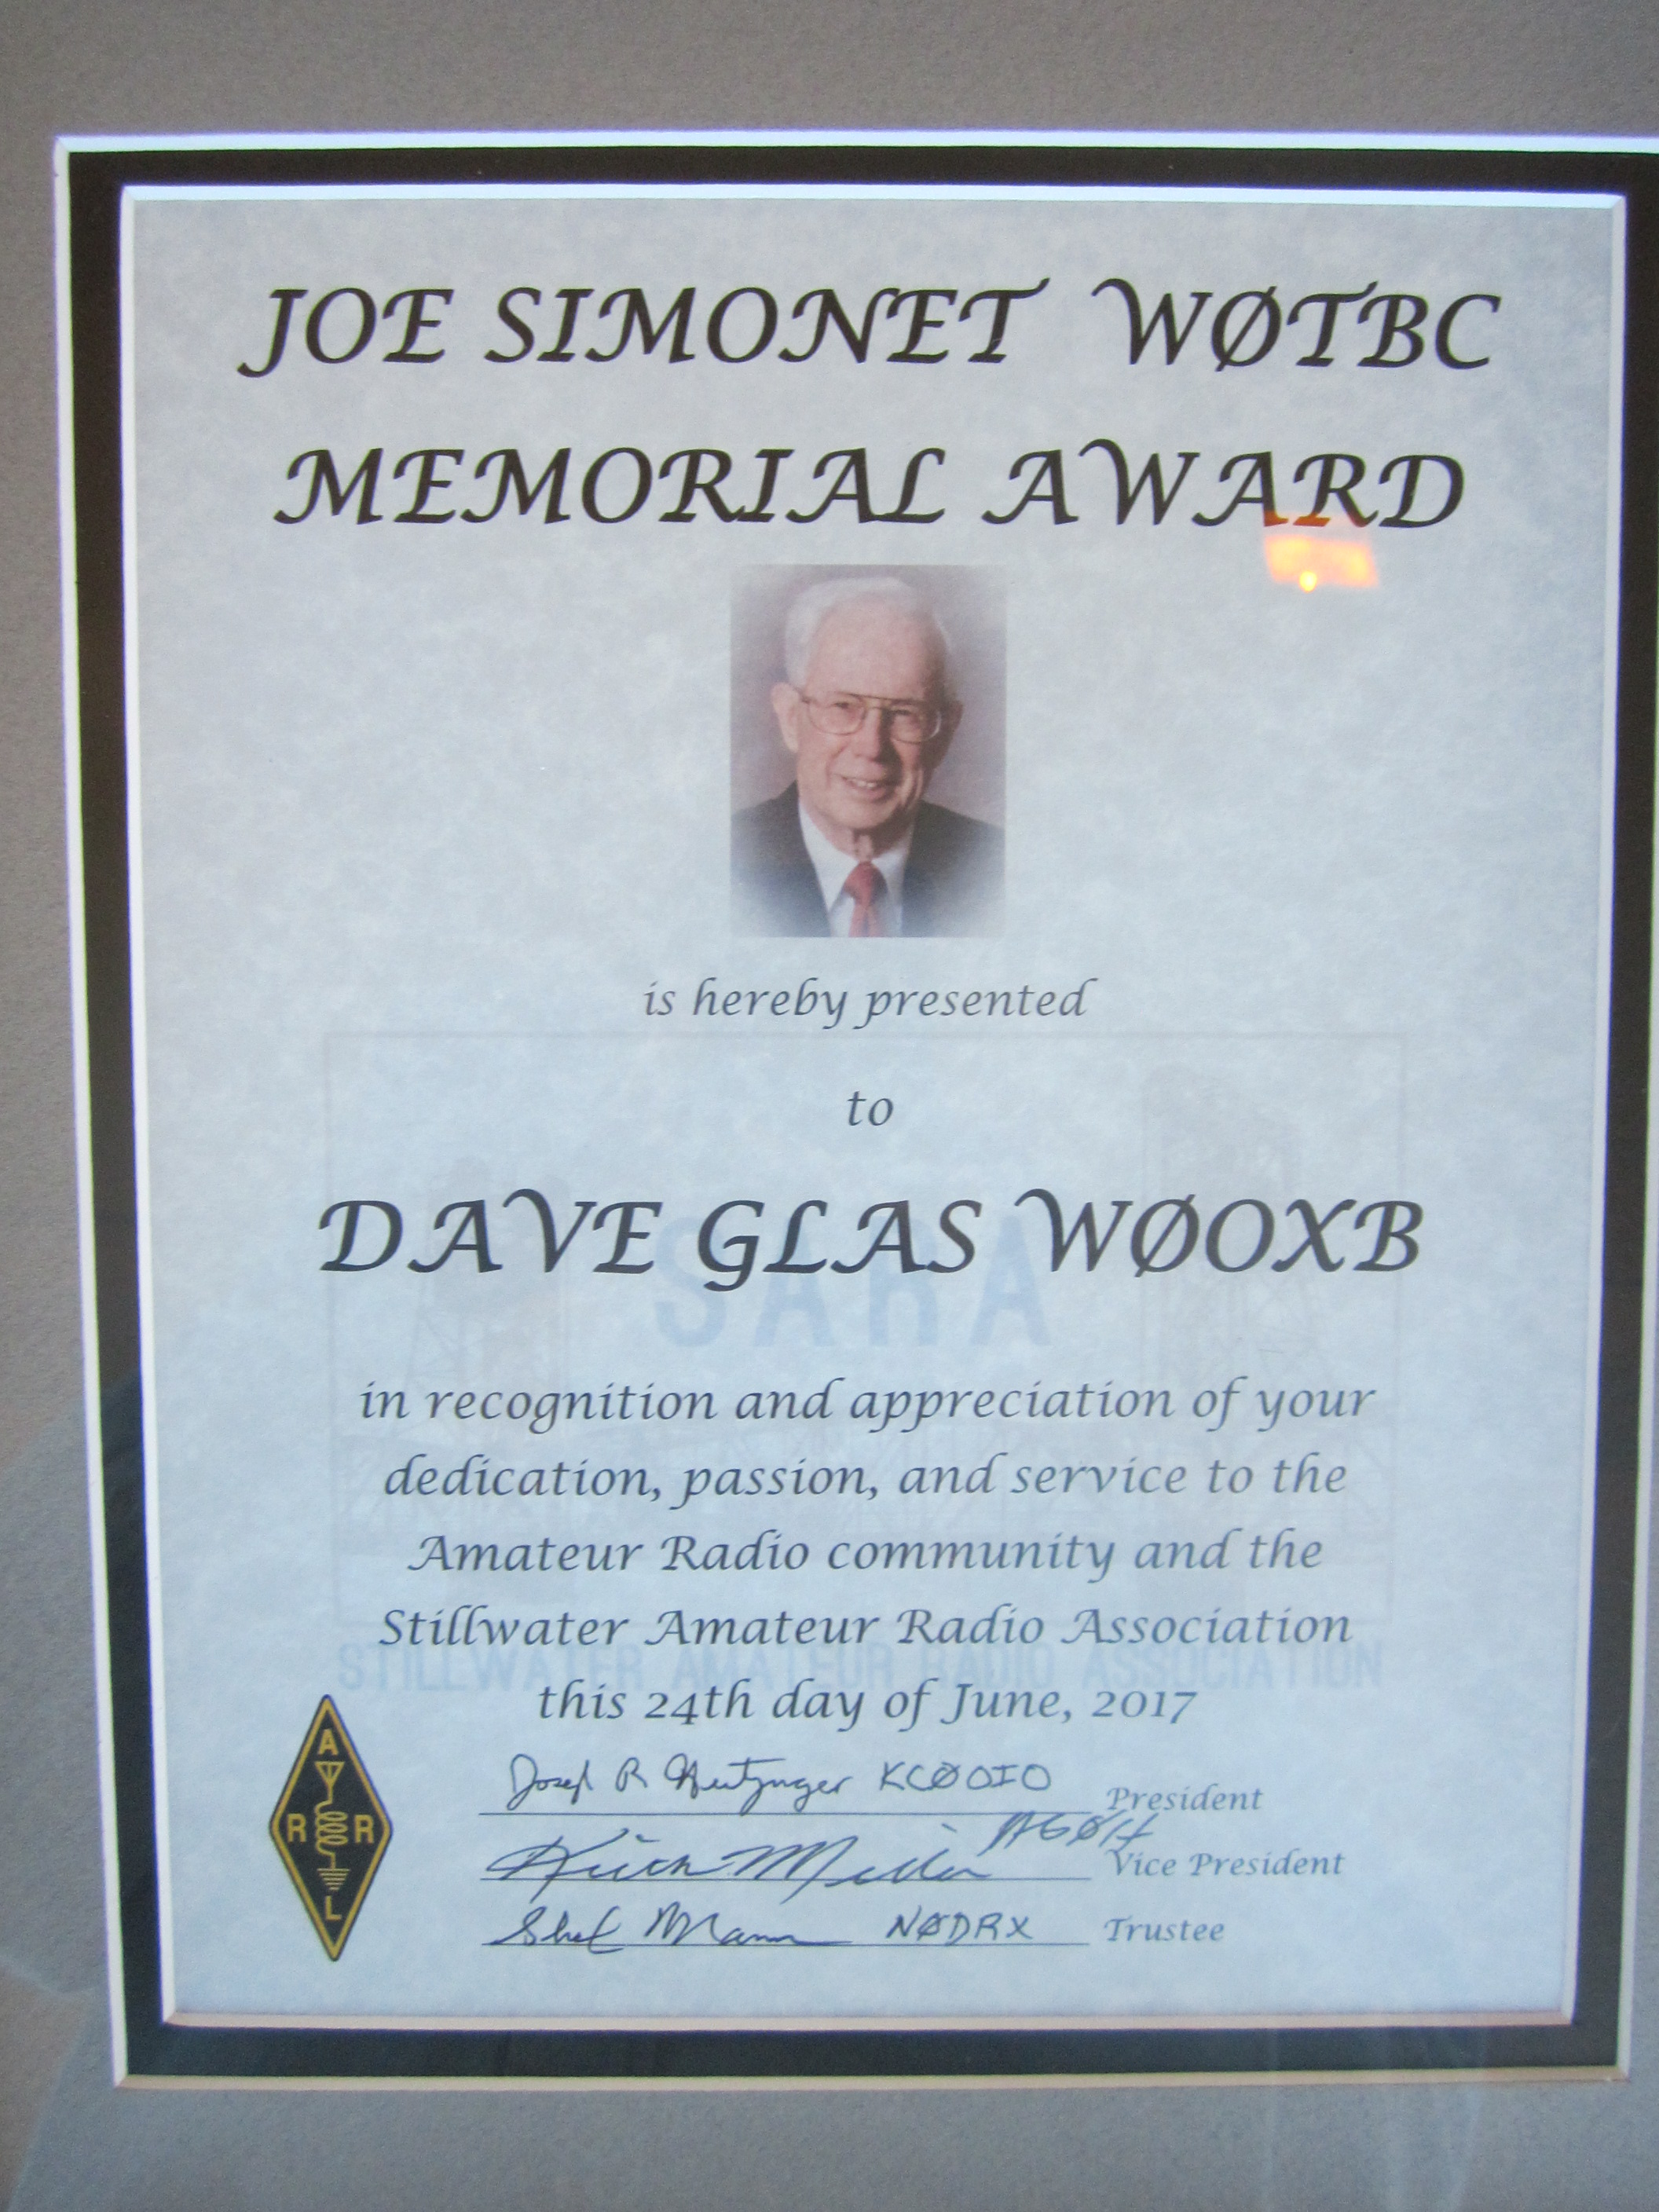 The Joe Simonet WØTBC Memorial Award